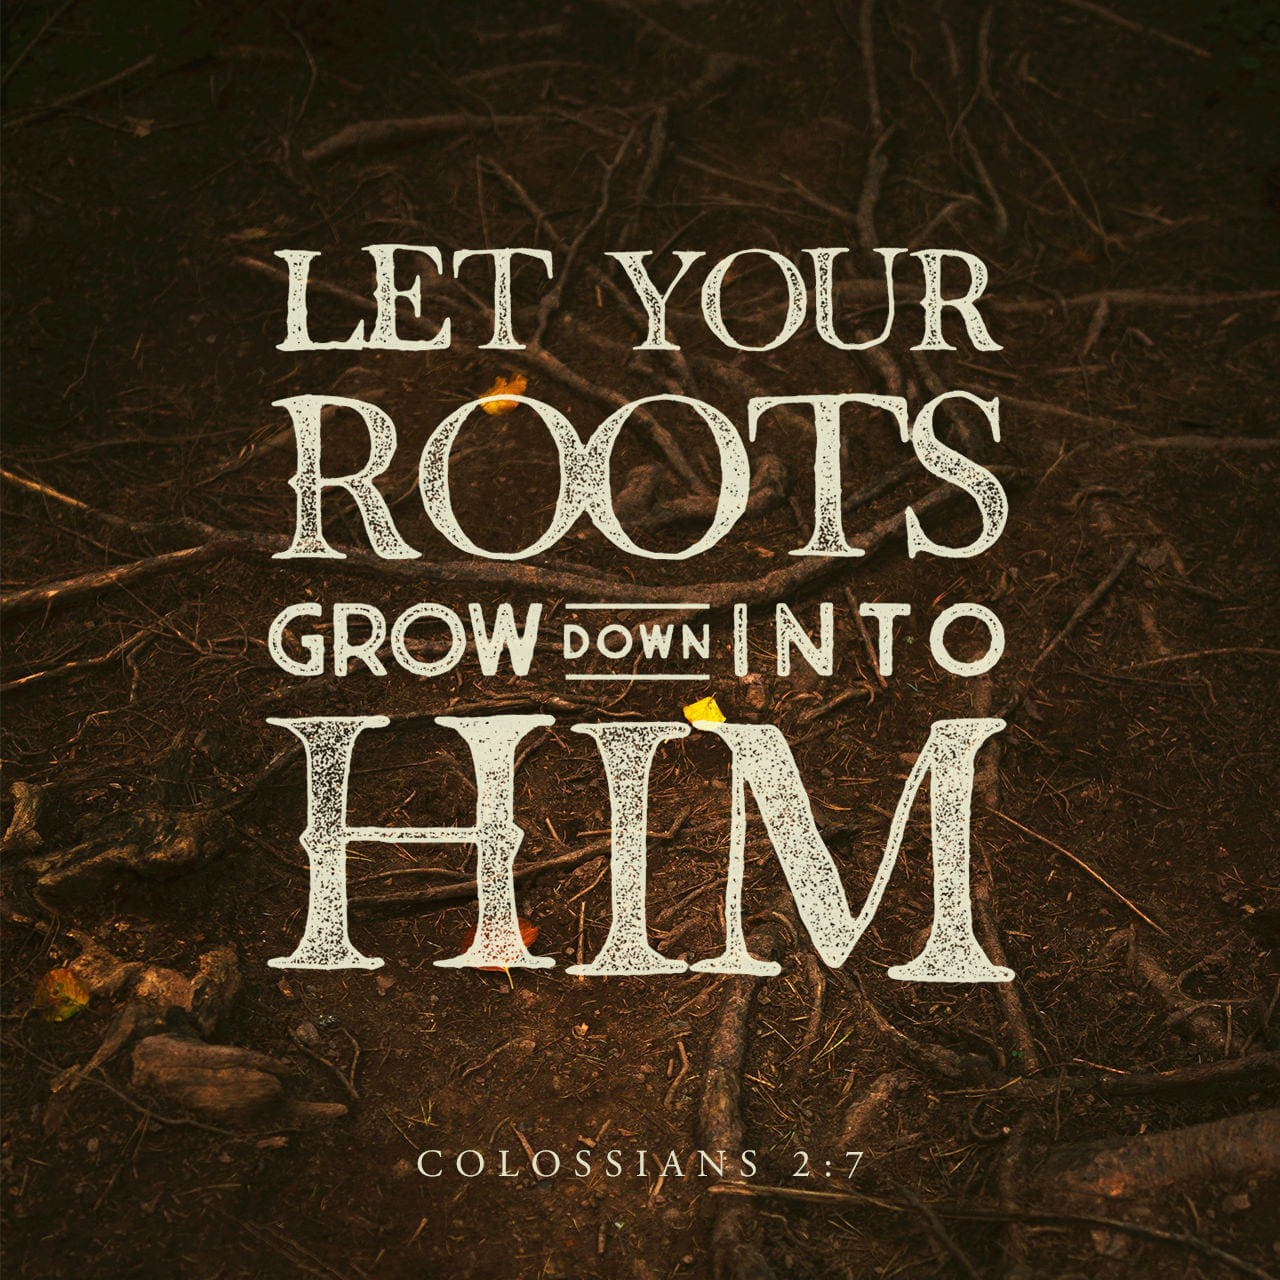 Colossians 2:7 Rooted and built up in him, and stablished in the faith, as ye have been taught, abounding therein with thanksgiving. | King James Version (KJV)